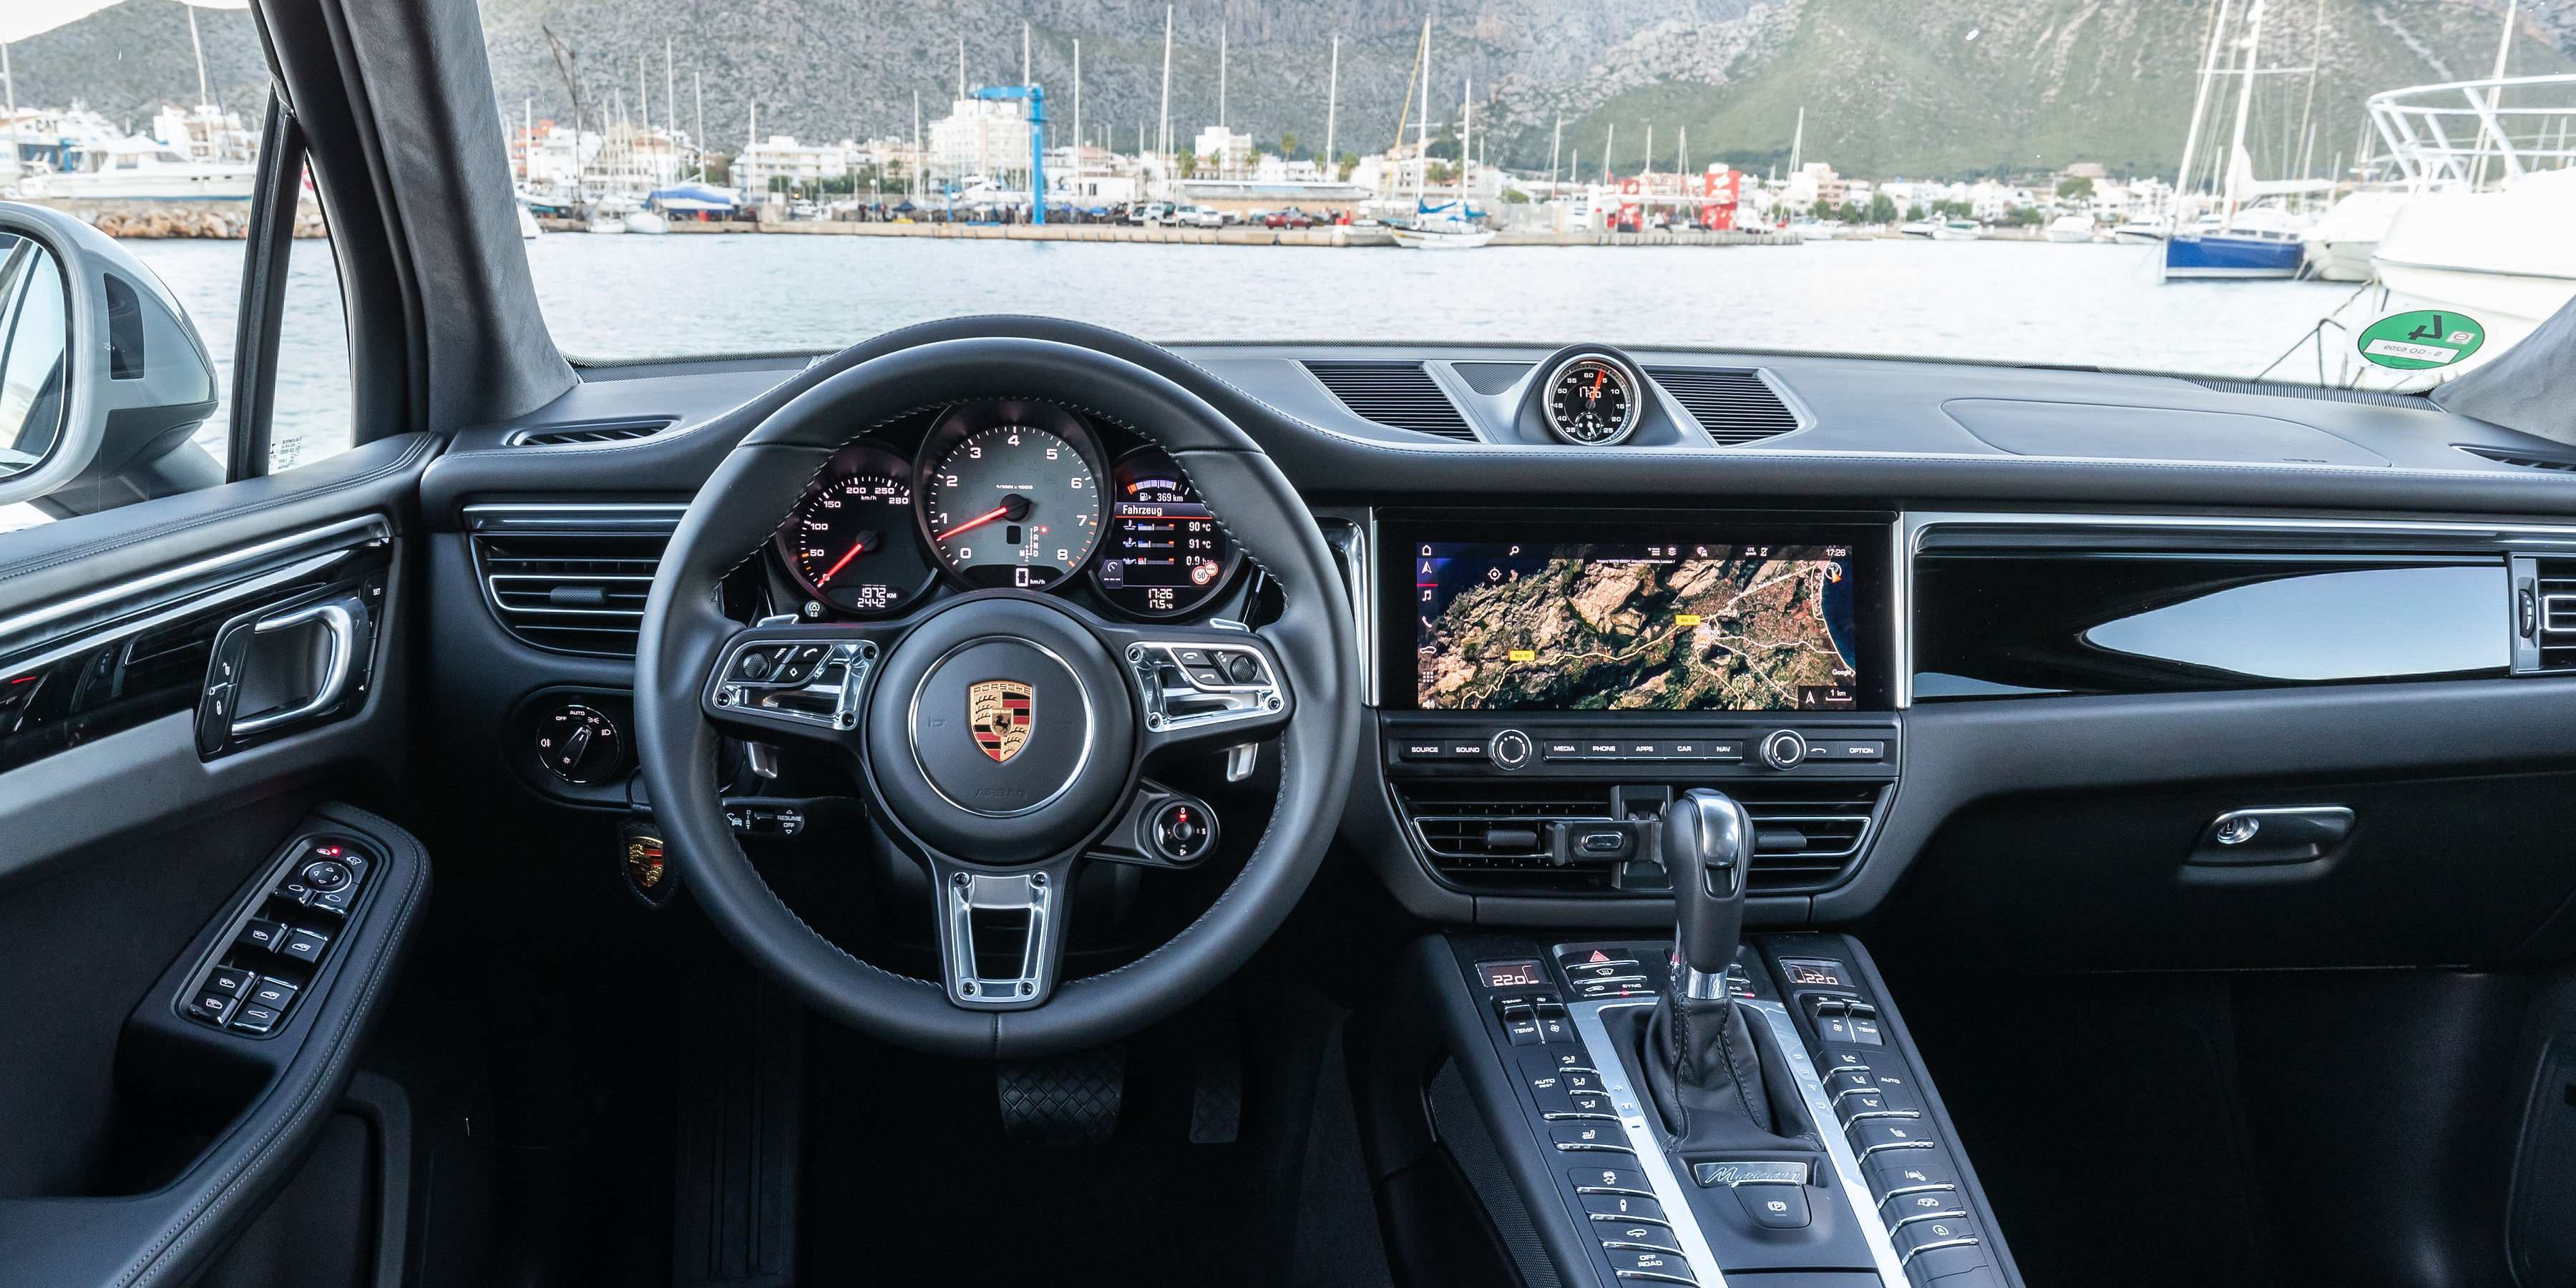 72 The Best 2019 Porsche Macan Interior Redesign